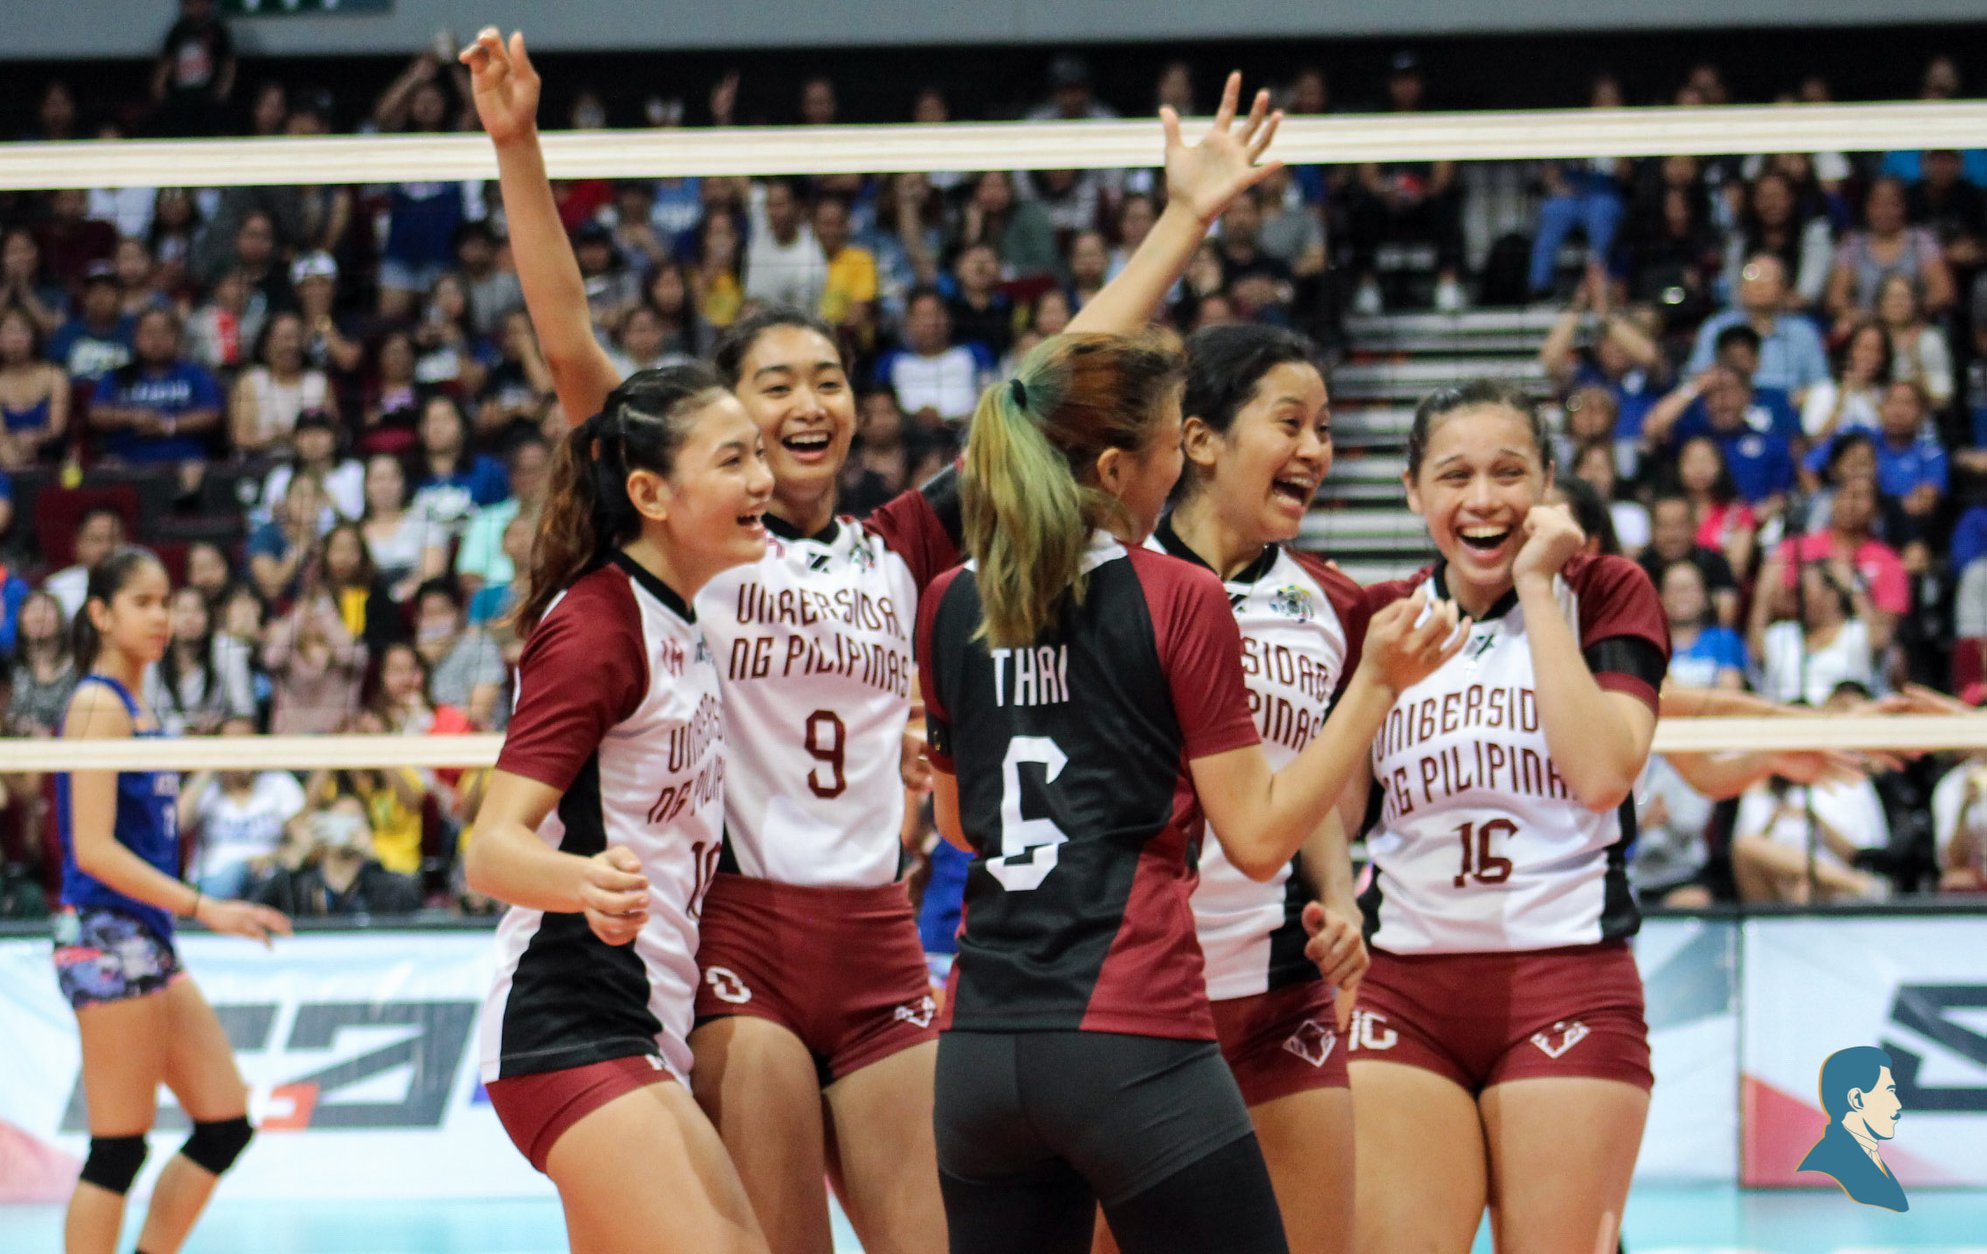 UP stuns Ateneo in straight-set win